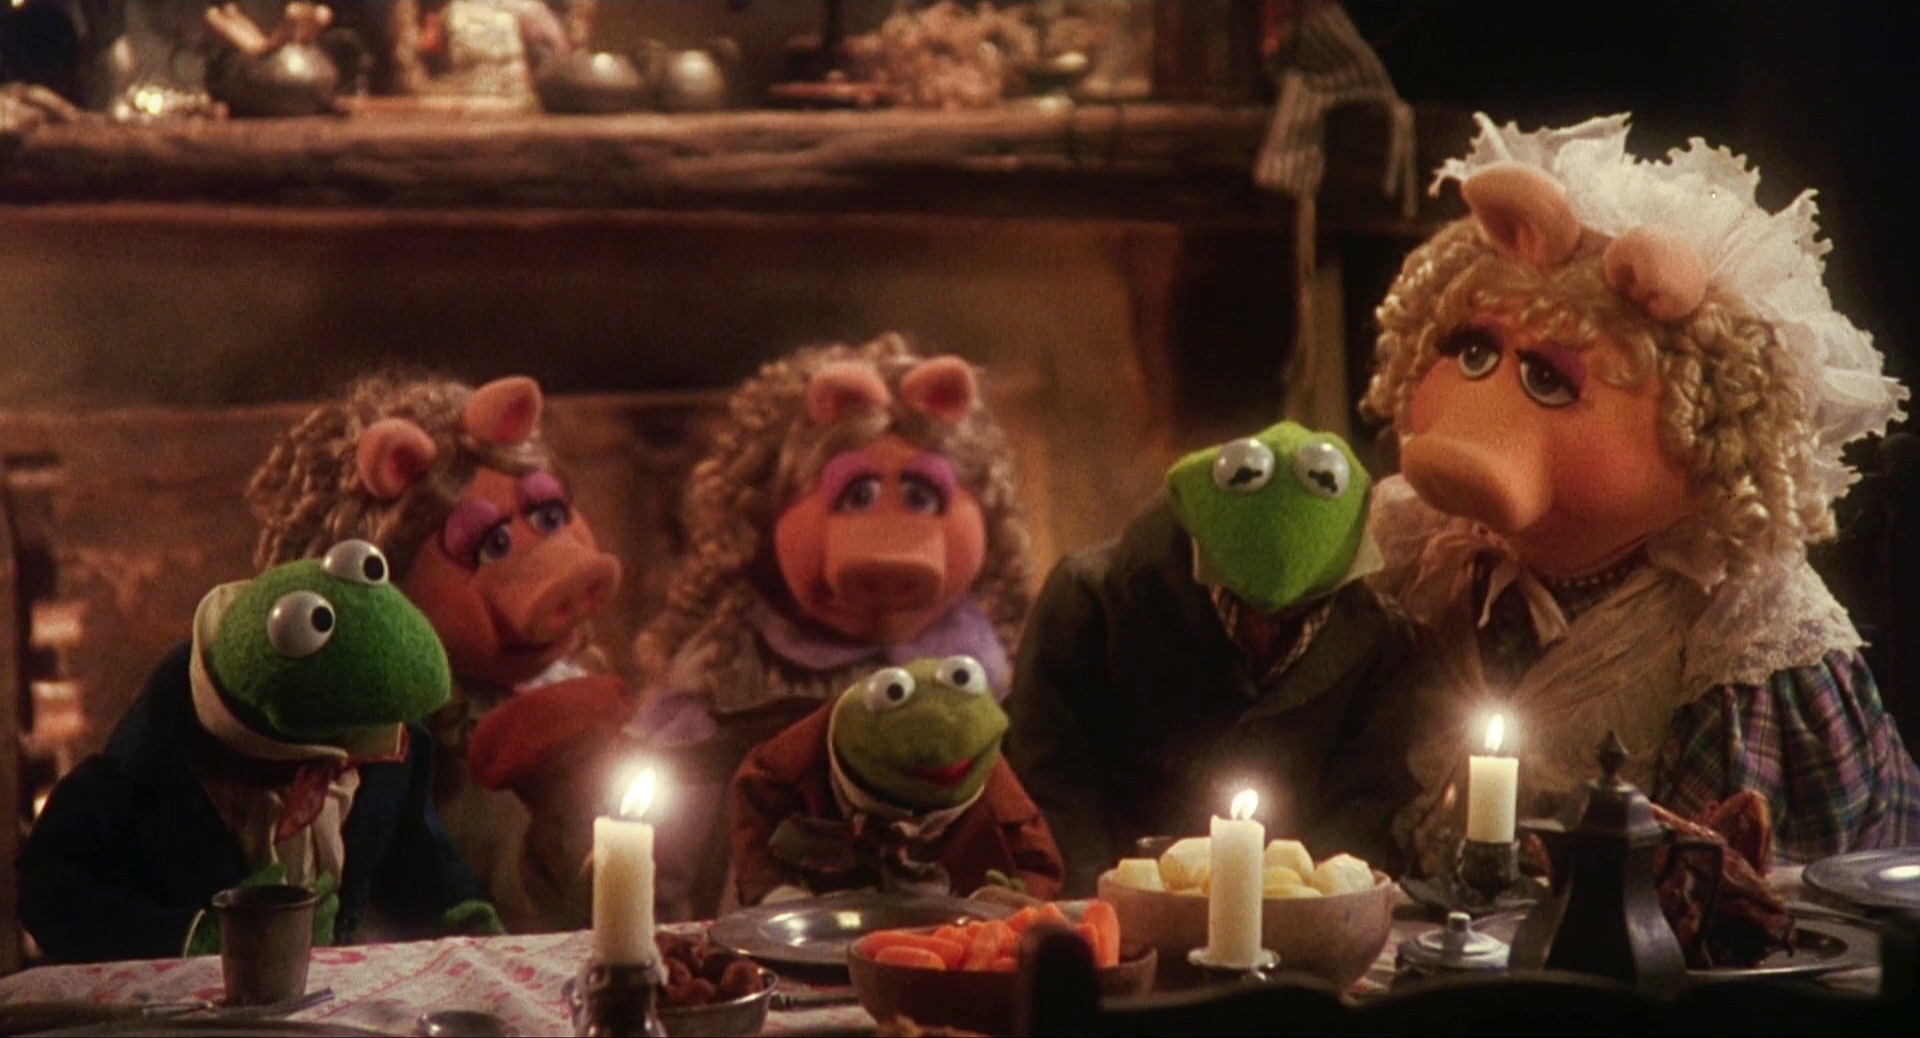 The Muppet Christmas Carol | Muppet Wiki | FANDOM powered by Wikia